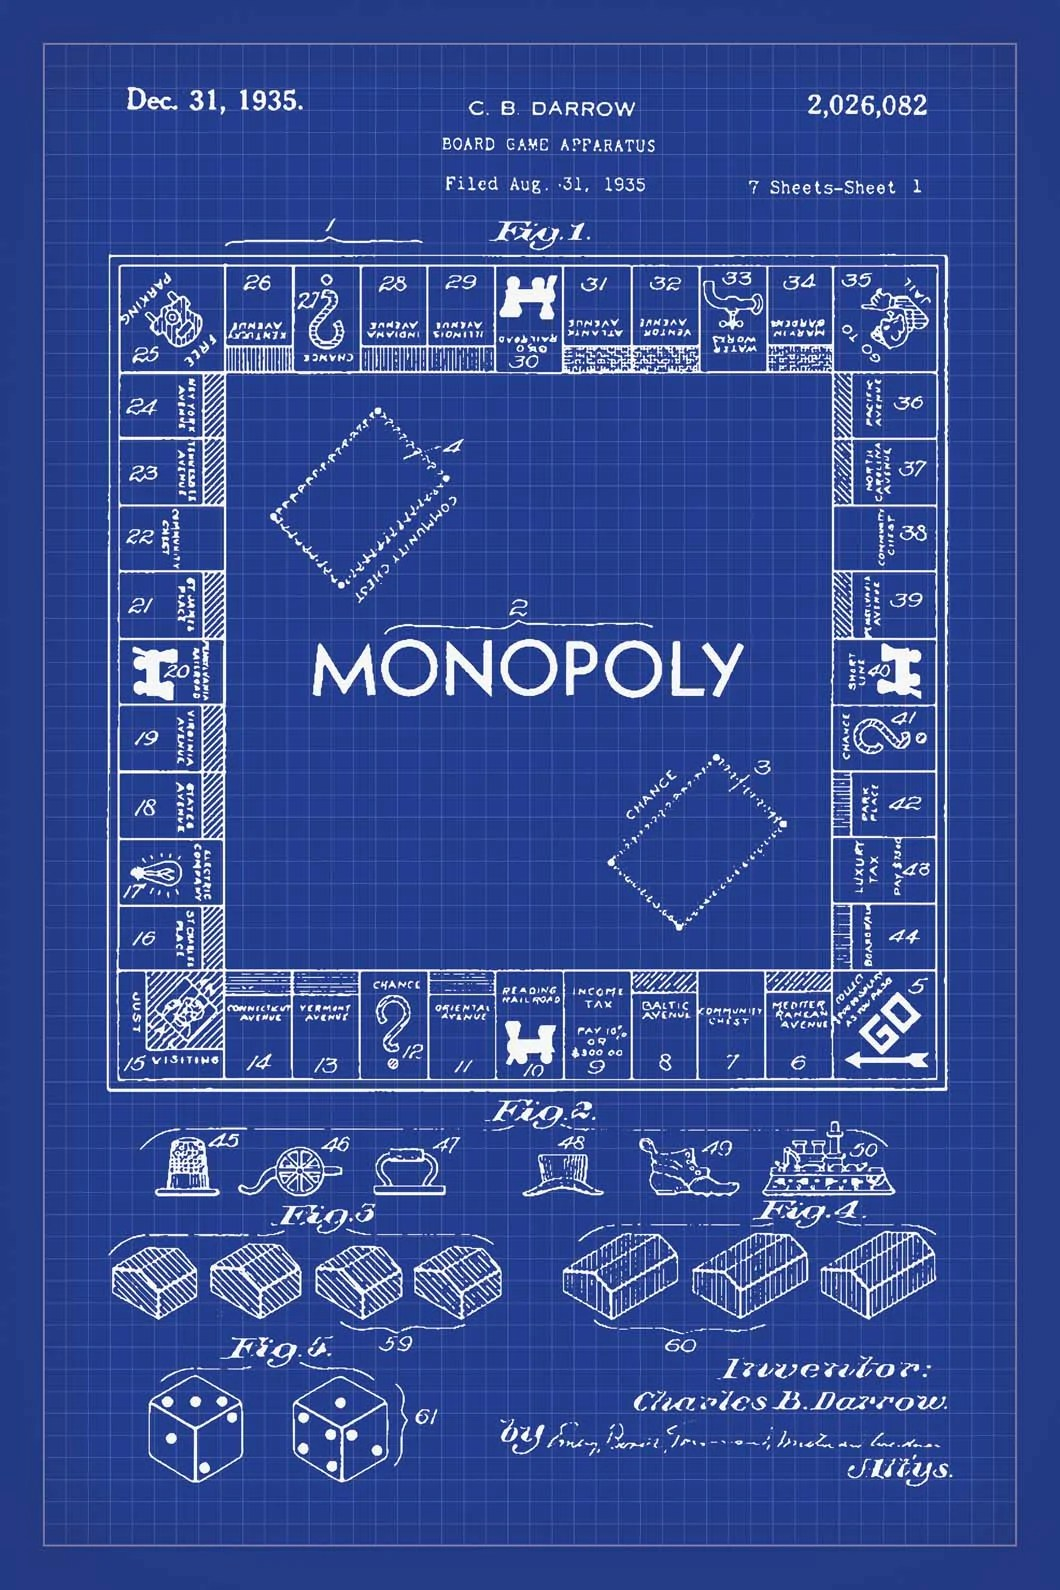 medium resolution of  monopoly board game patent print 16x24 inches blueprint art poster